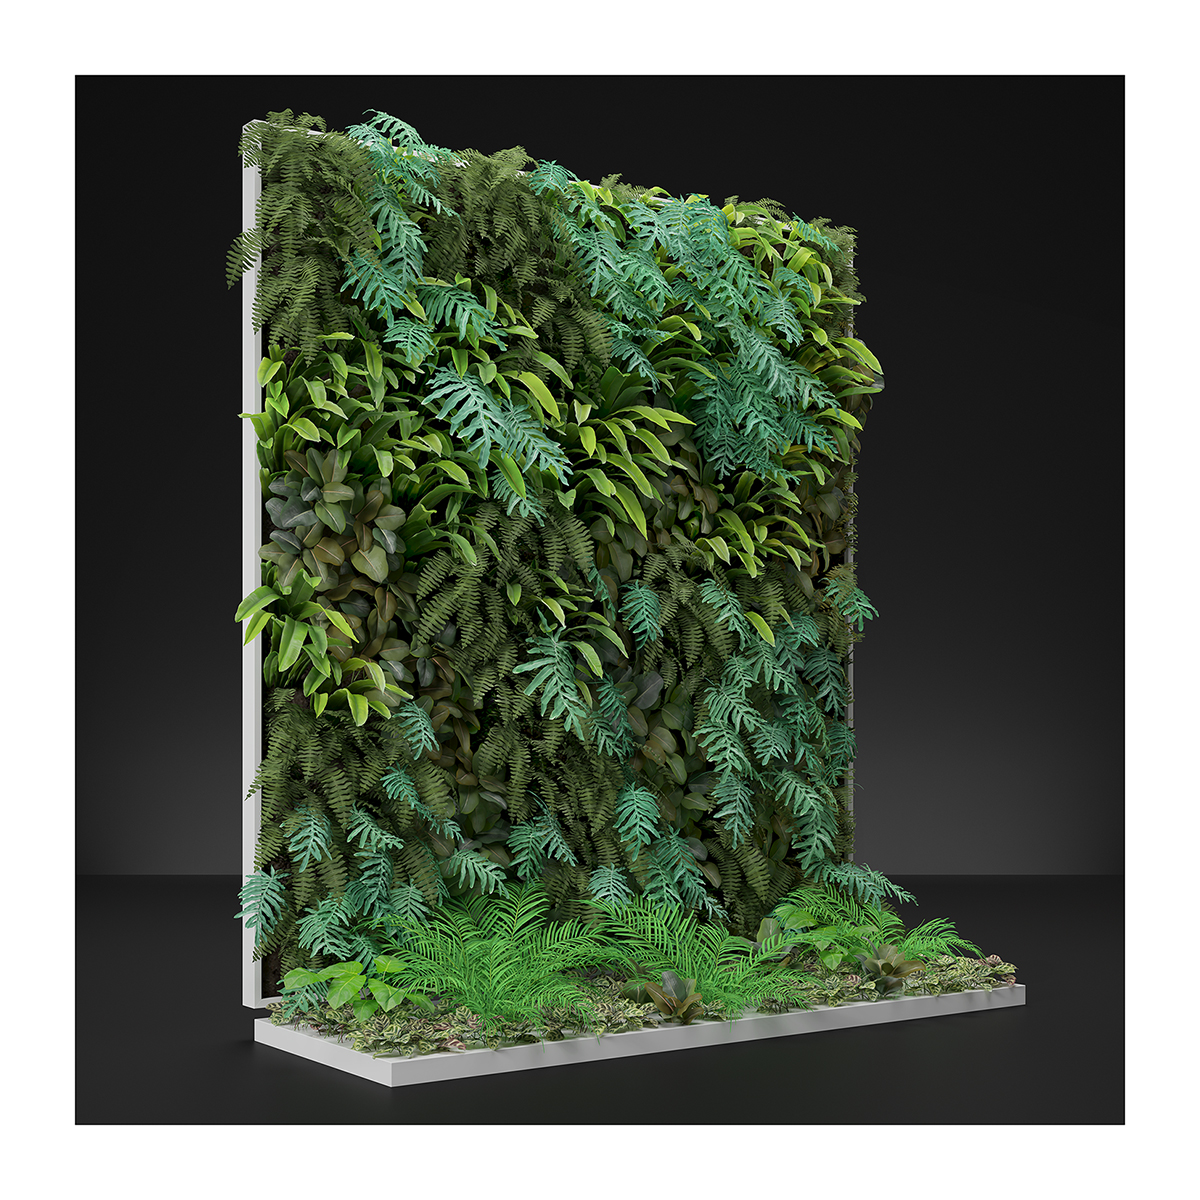 Virtual Vertical Garden N2 001 1 - 2020 - Virtual Vertical Garden N°2